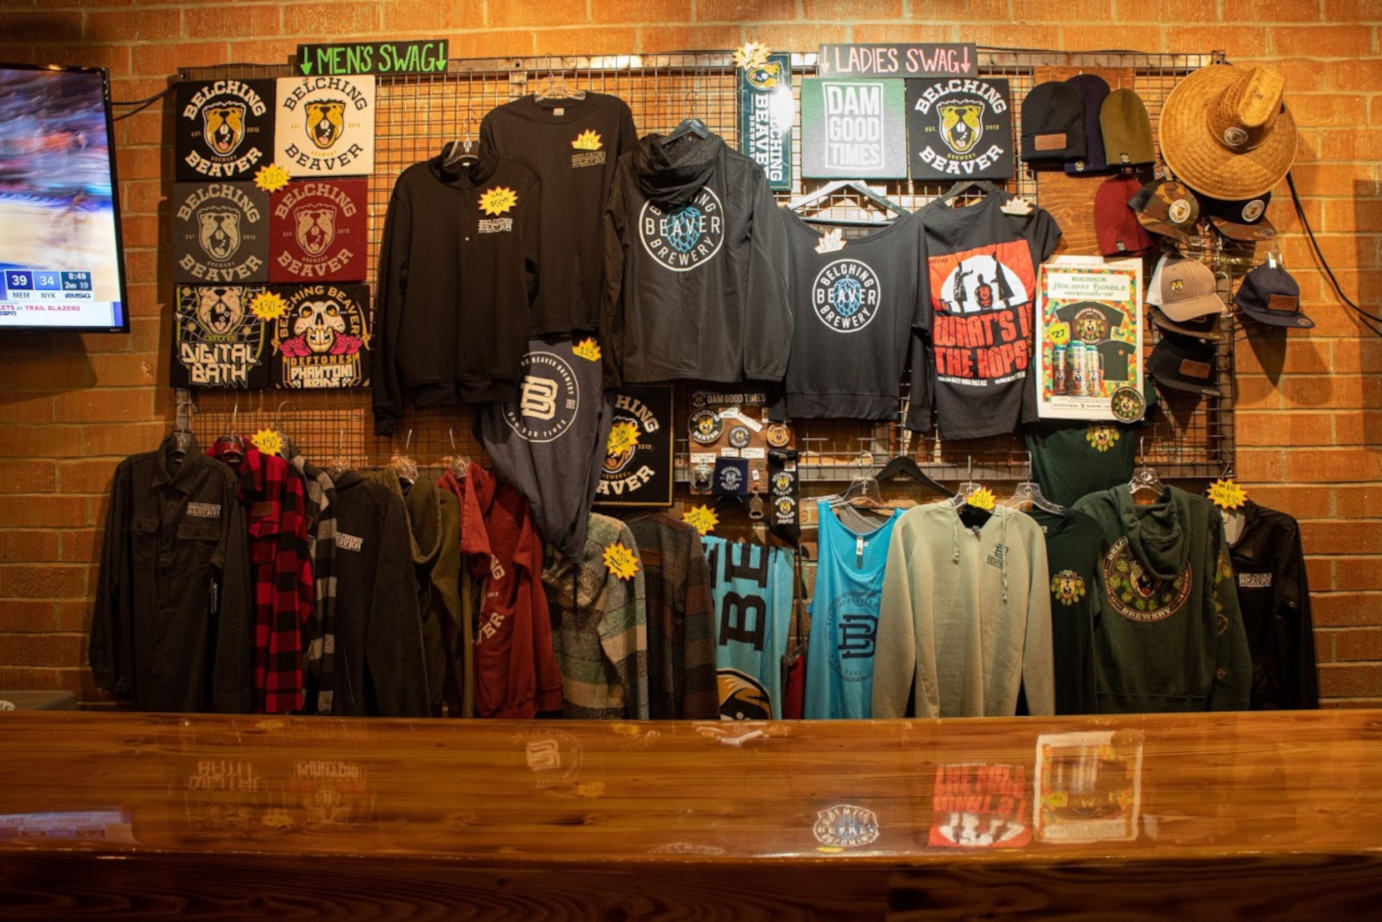 Interior, a wall with clothing for sale